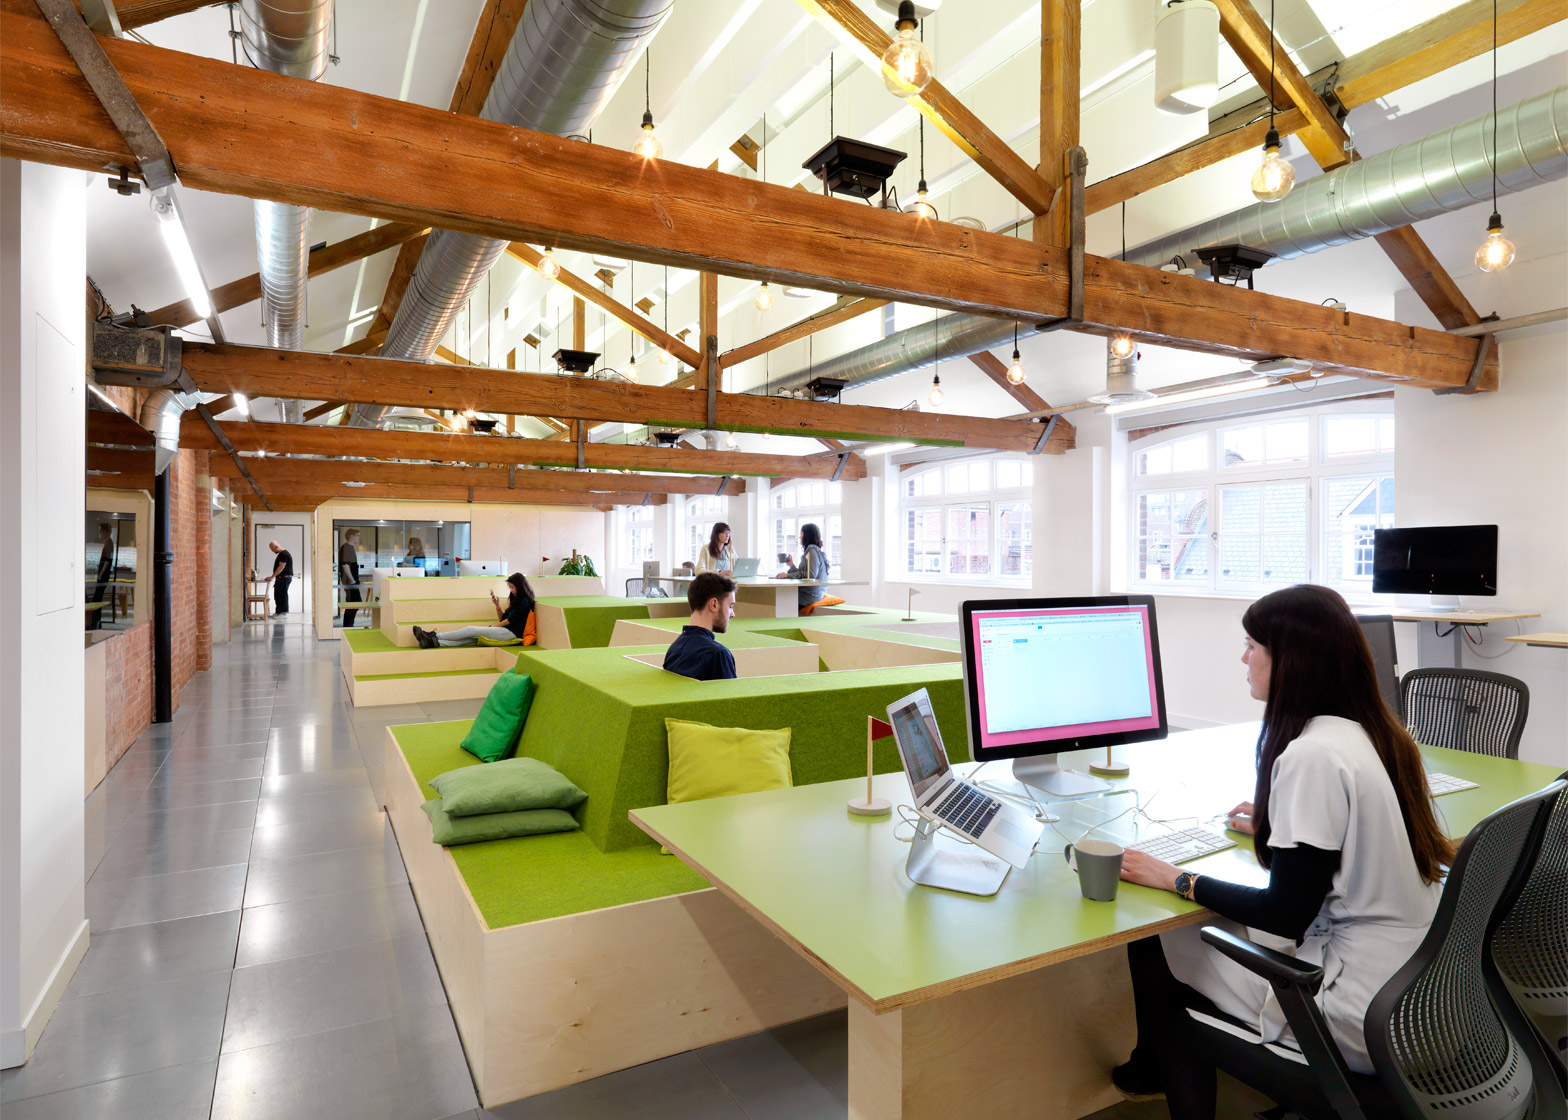 open plan office design is preventing workers from